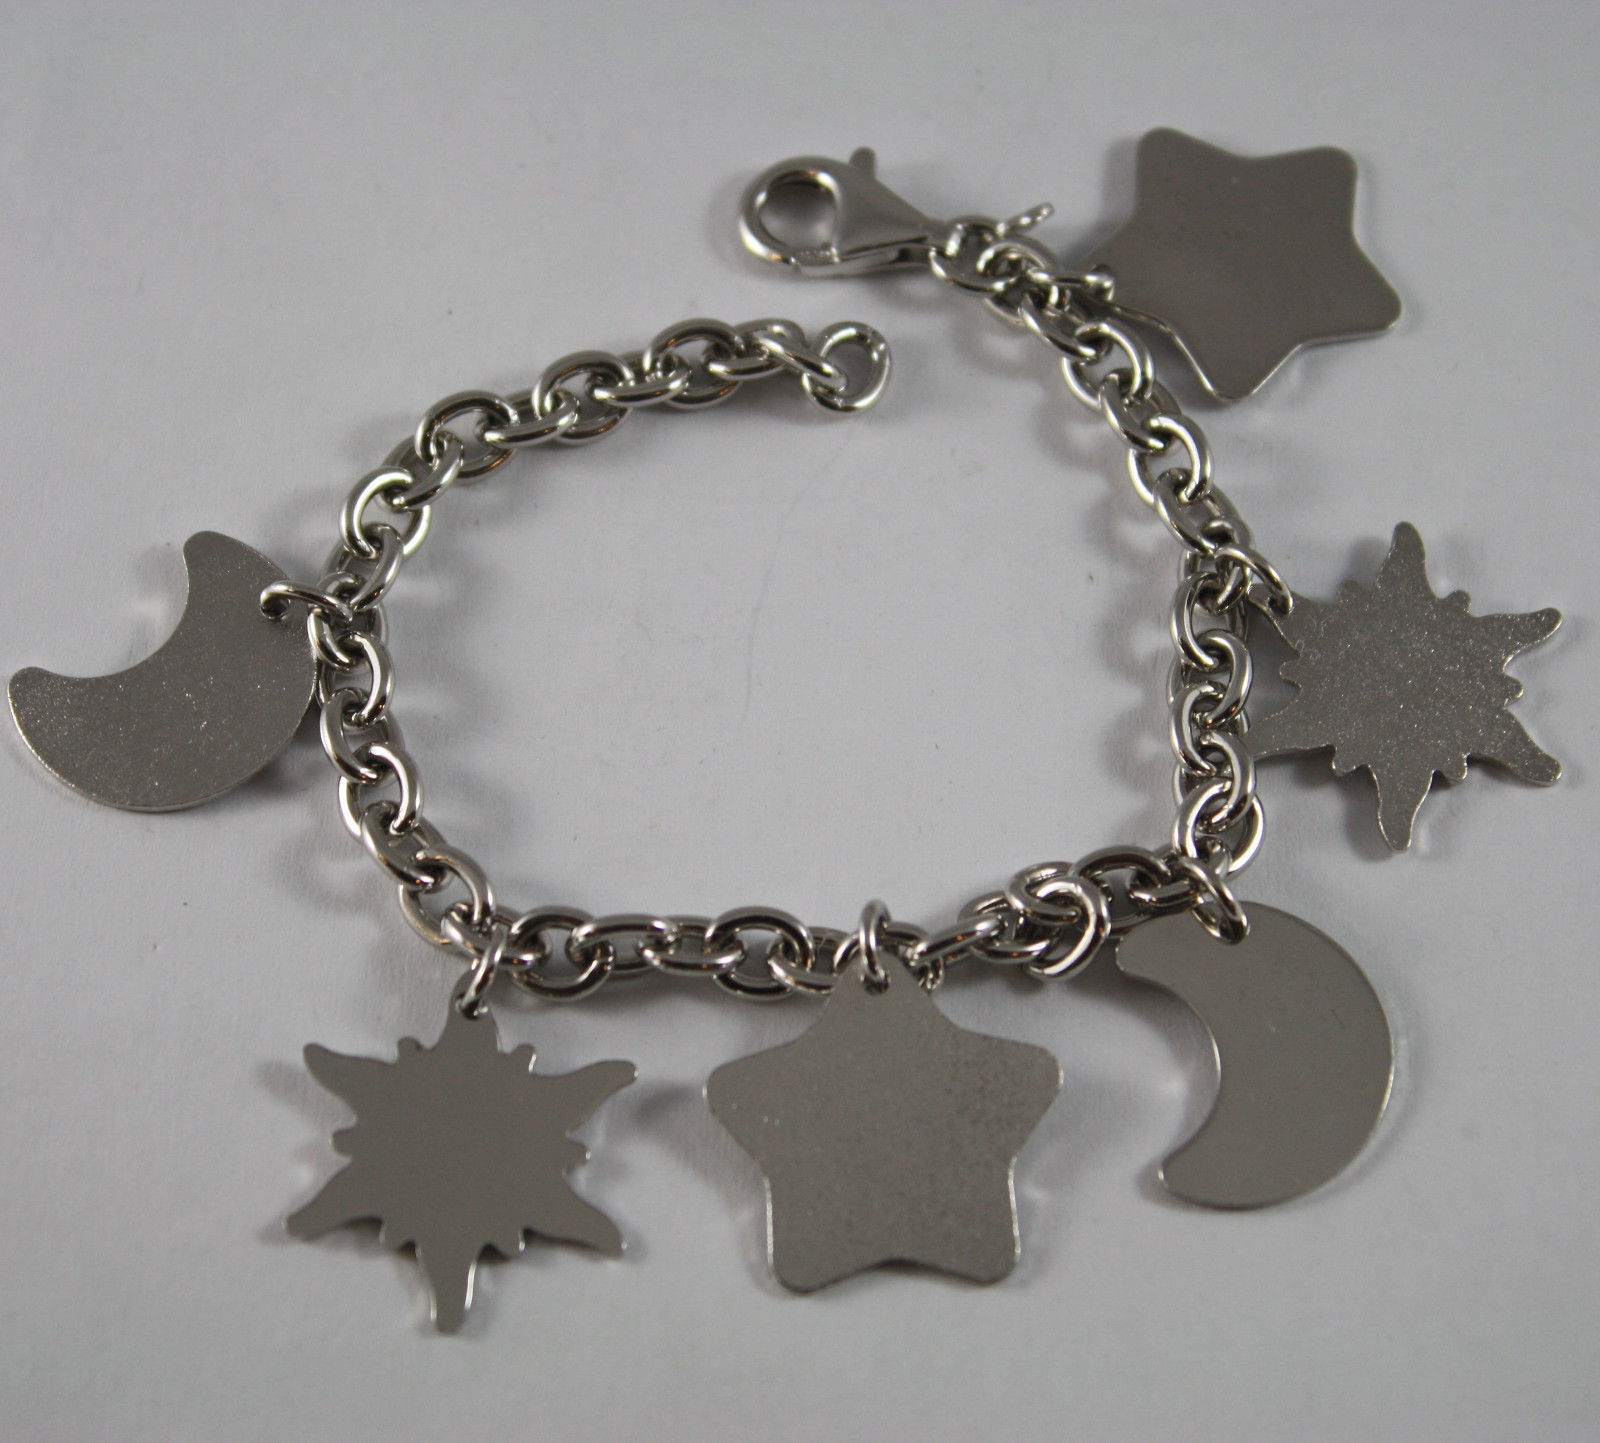 .925 RHODIUM SILVER BRACELET WITH SATIN AND GLOSSY CHARMS